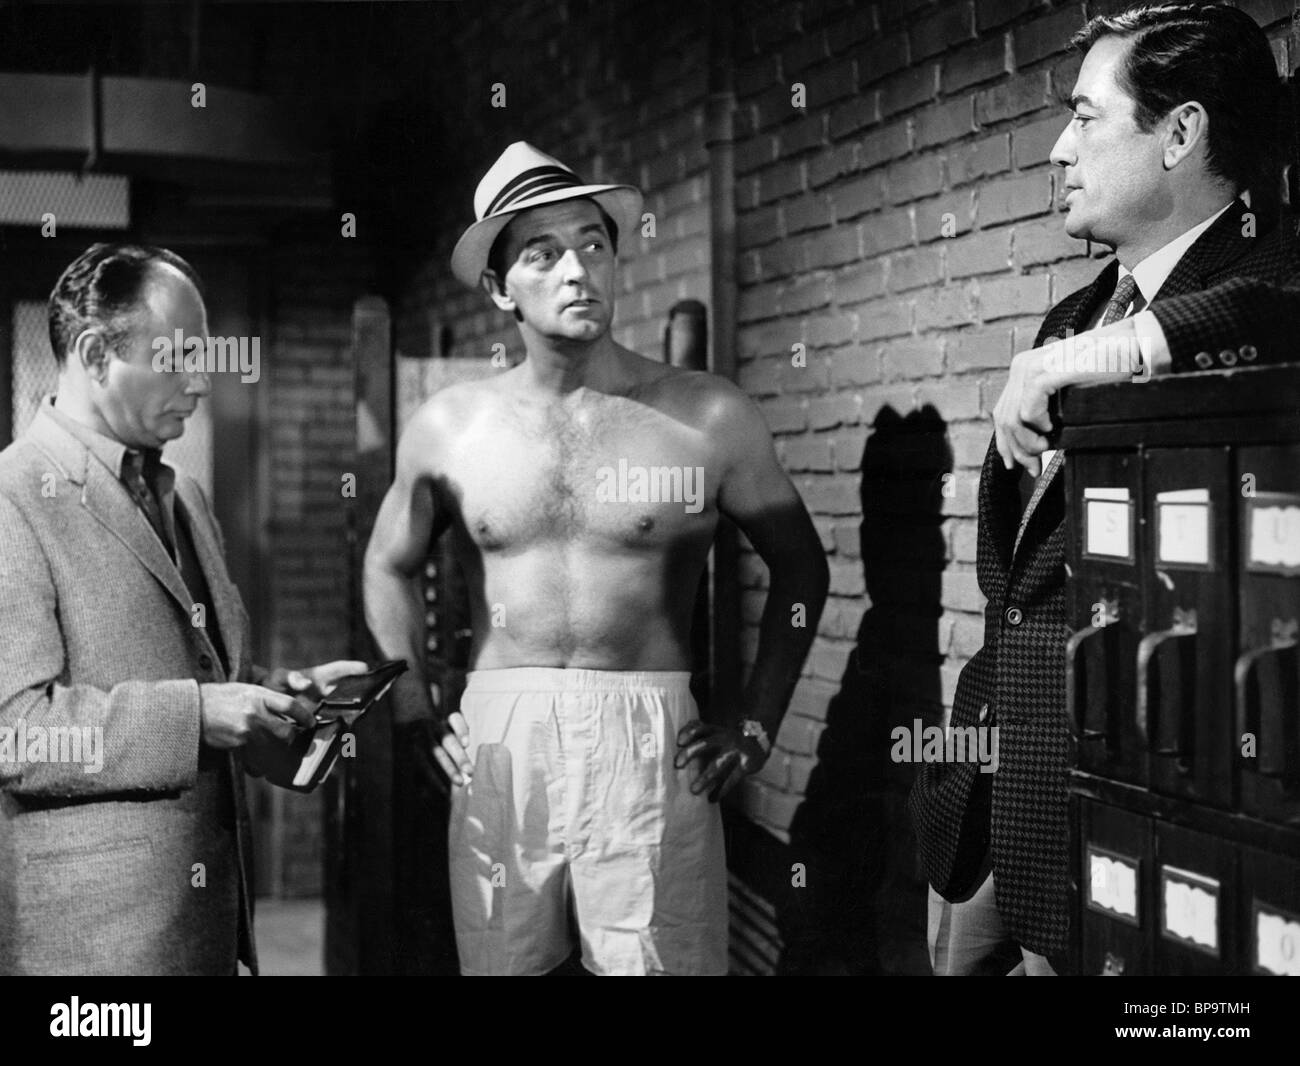 Mitchum agrees to a strip search before Martin Balsam and Gregory Peck. He's been lifting.